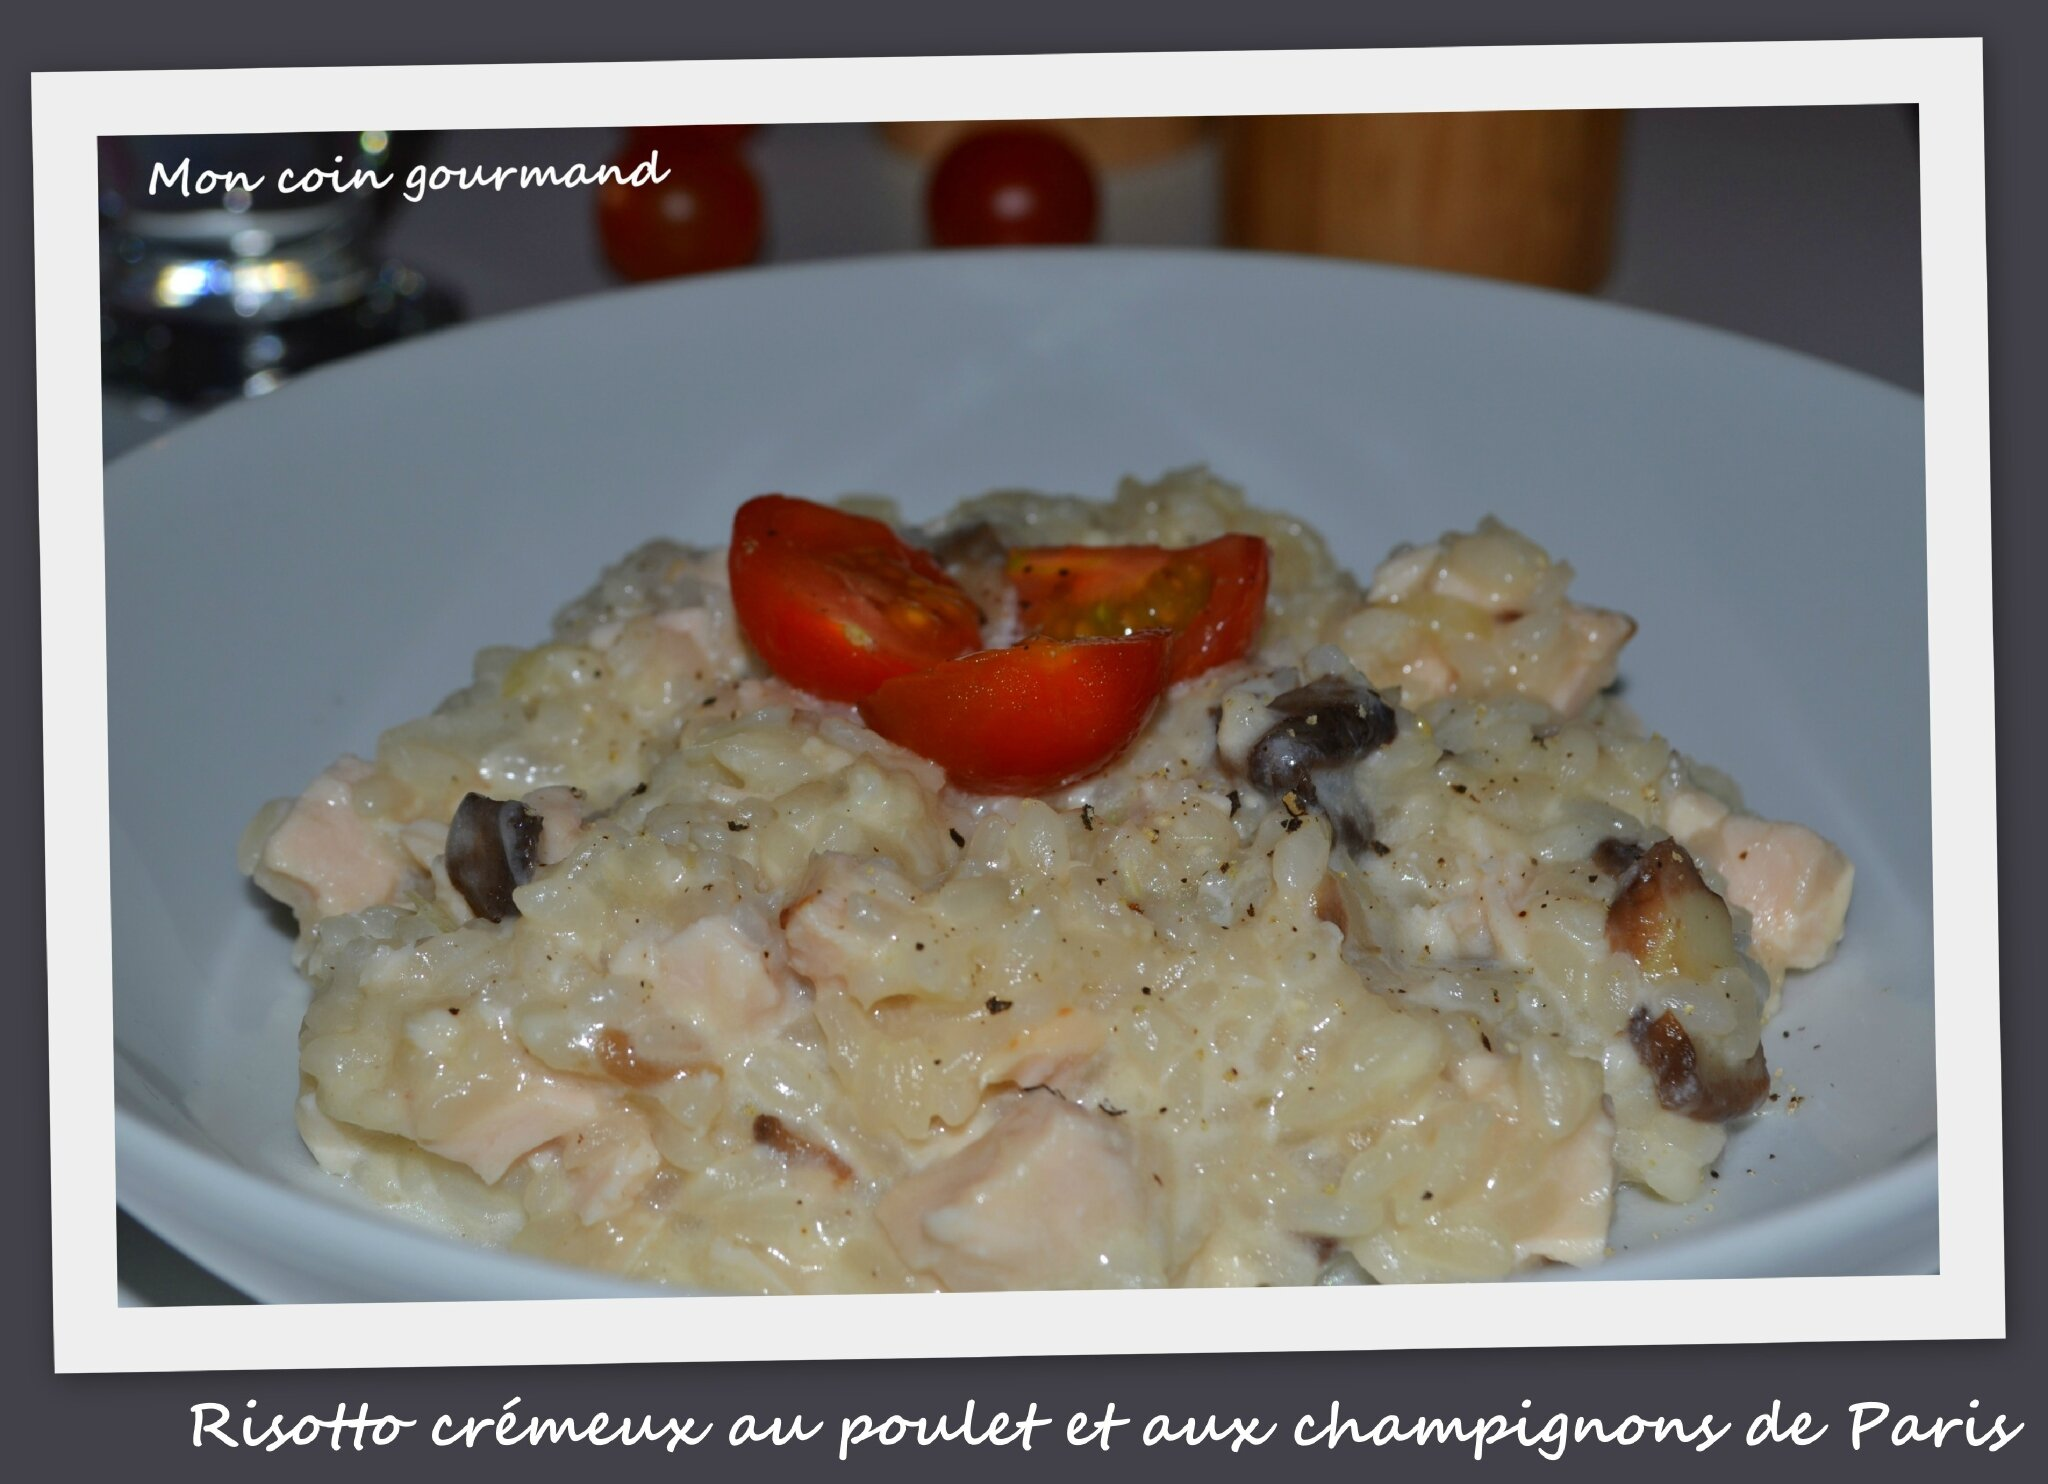 risotto cr meux au poulet et aux champignons de paris mon coin gourmand. Black Bedroom Furniture Sets. Home Design Ideas